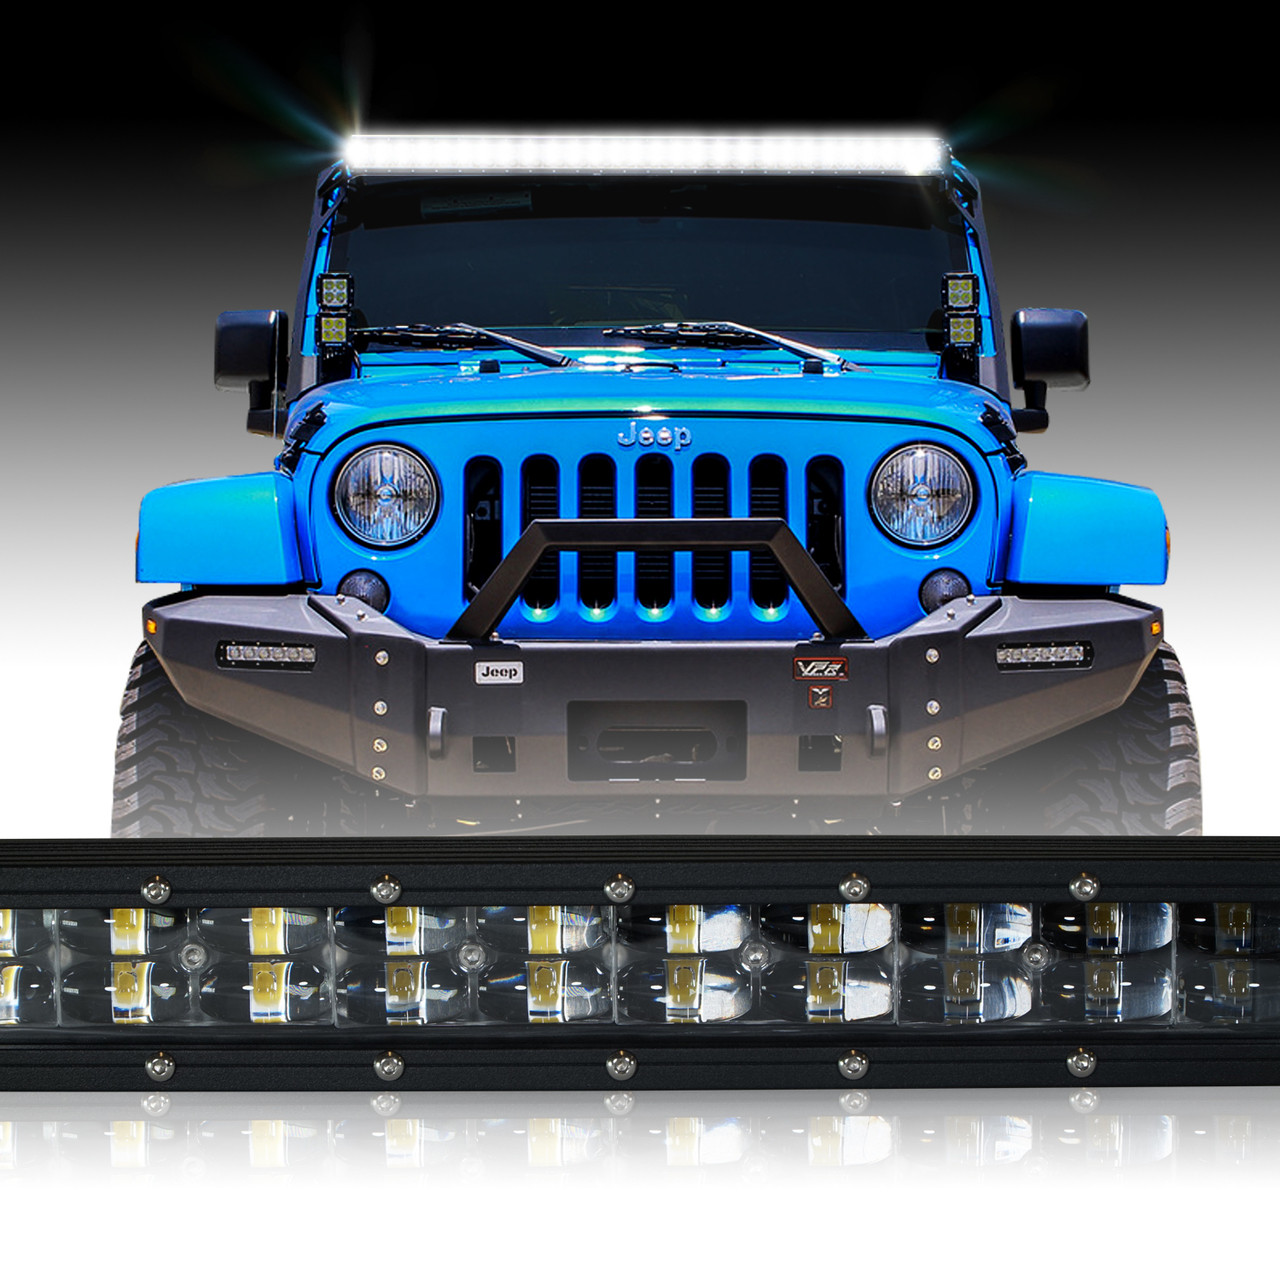 hight resolution of led light bar 288w 50 inches bracket wiring harness kit for wrangler jk 2007 2017